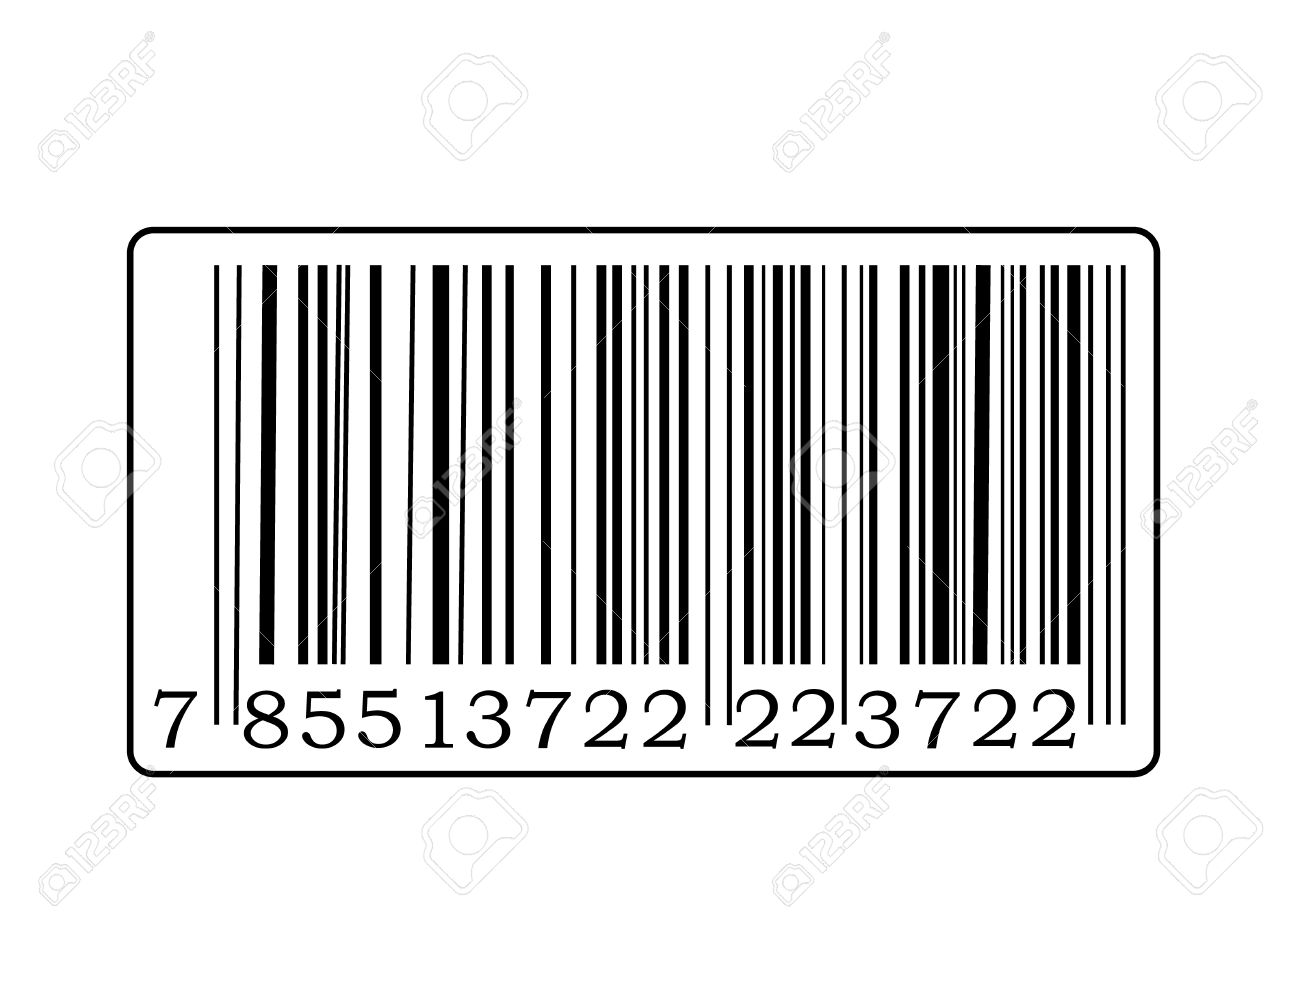 Detail Of Barcode Label With Number. Royalty Free Cliparts.